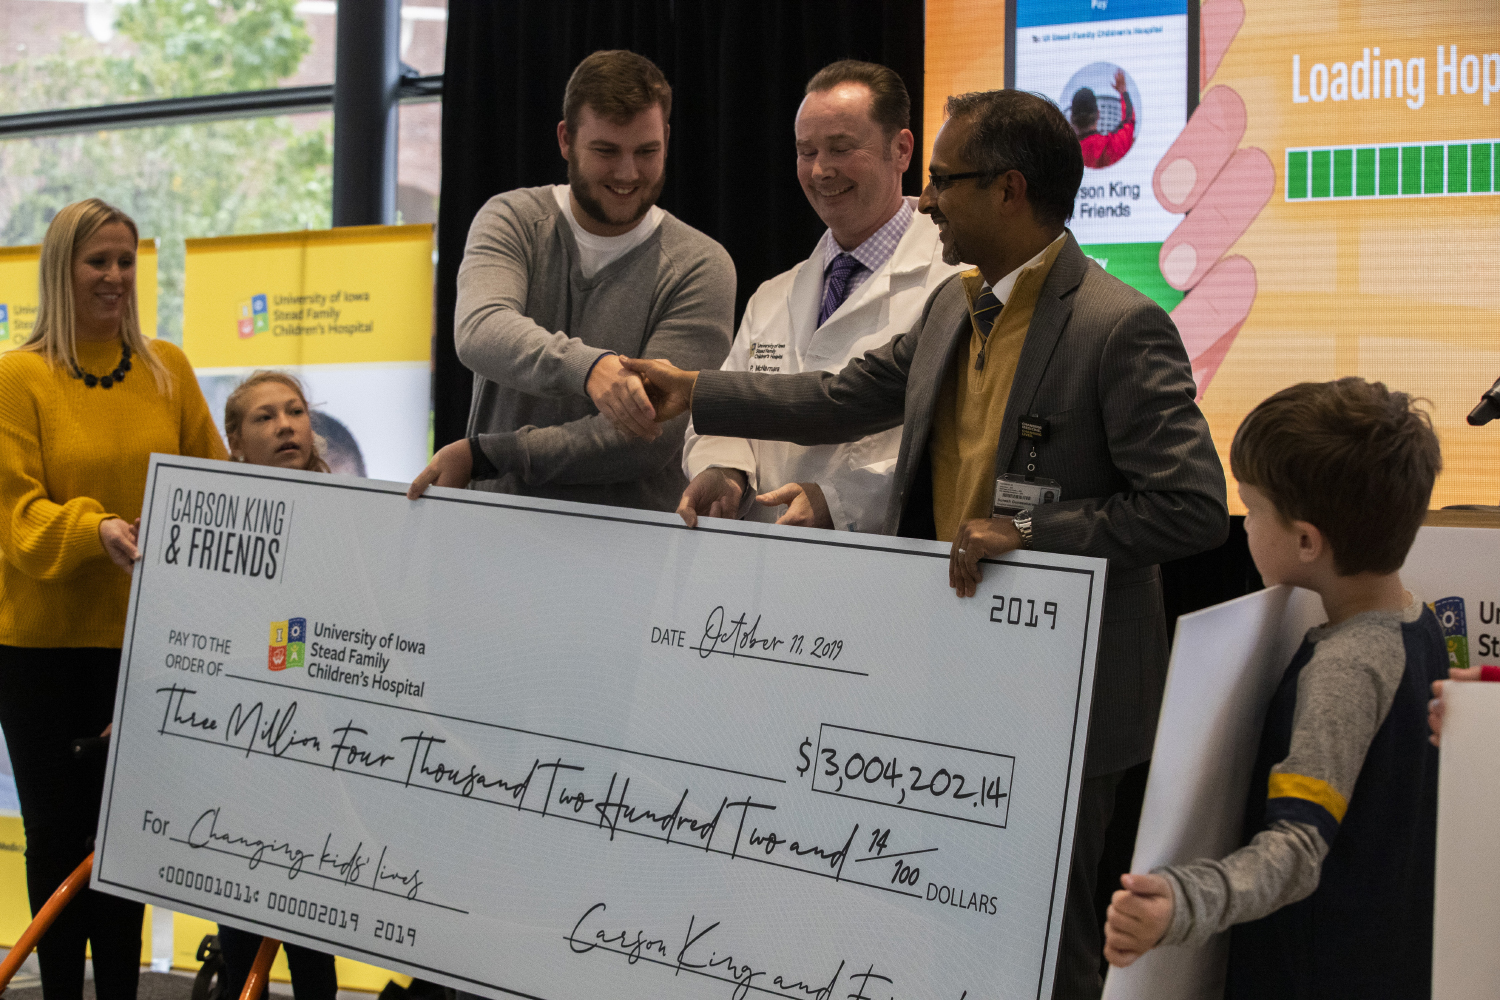 "Carson King presents a check for $3,004,202.14 to UI Stead Family Children's Hospital on Friday. King made headlines recently after a sign he held on ESPN's game day resulted in raising millions of dollars  for a ""beer fund."